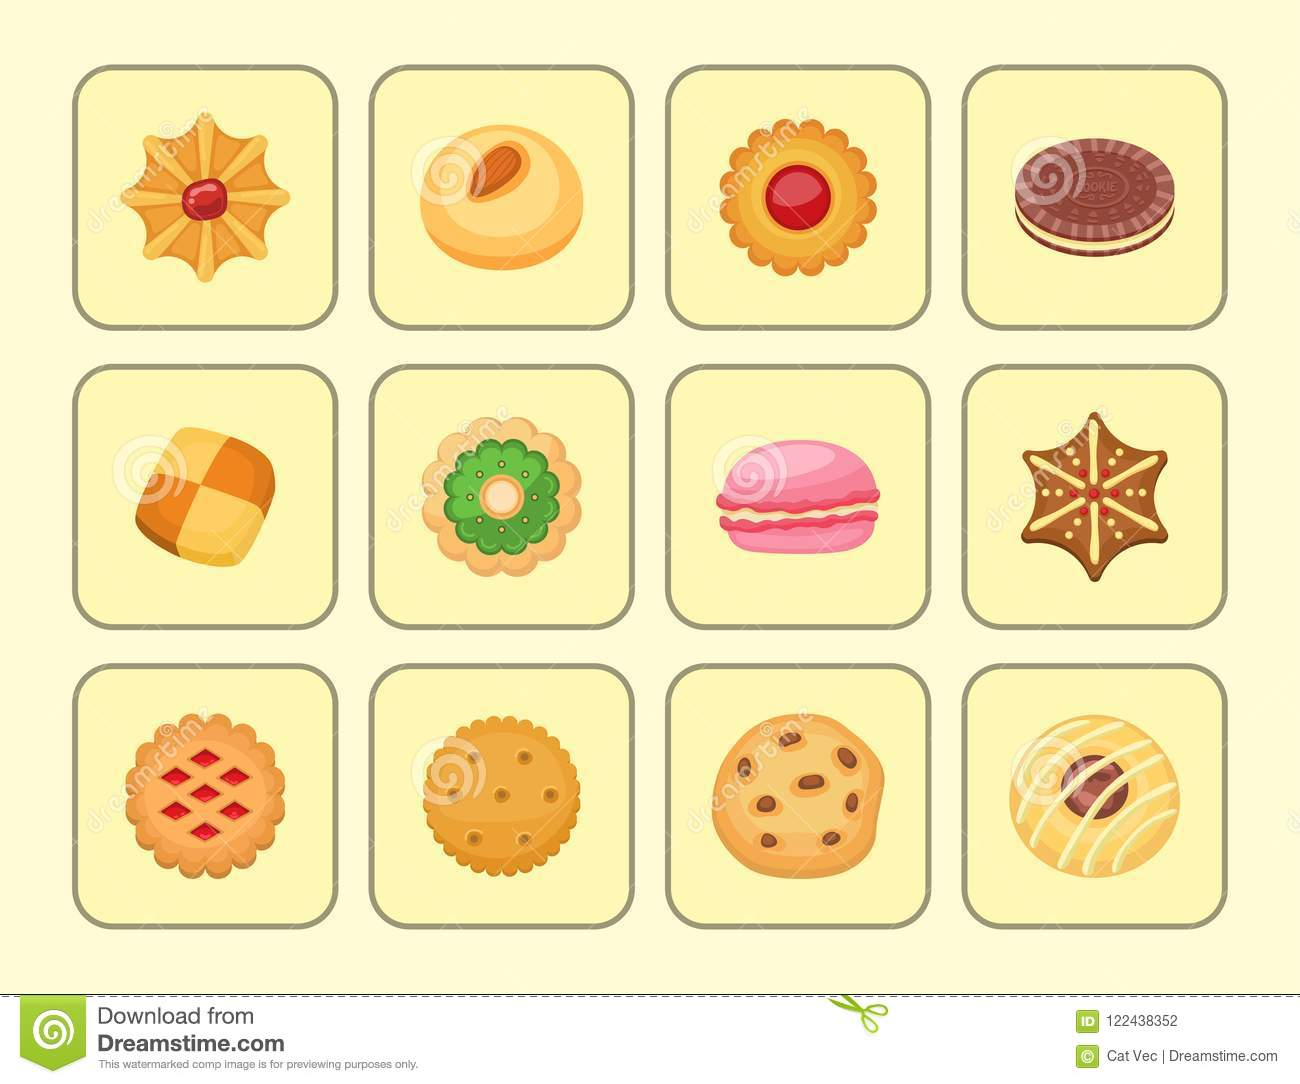 Different cookie cakes top view sweet food tasty snack biscuit sweet dessert vector illustration.